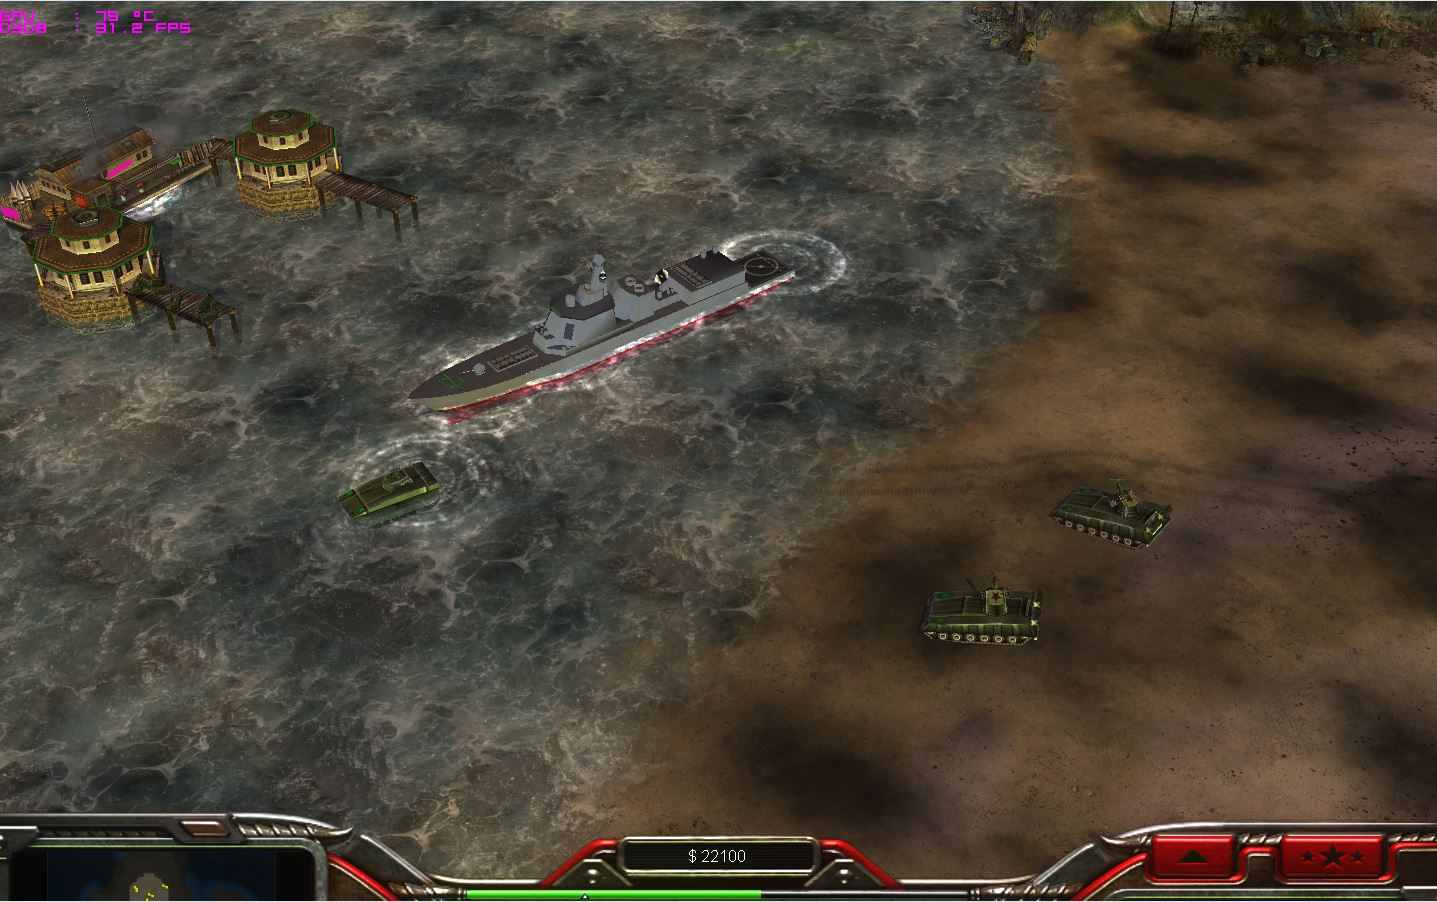 Earth conflict mod for cc generals zero hour, so you like jets huh, image, screenshots, screens, picture, photo